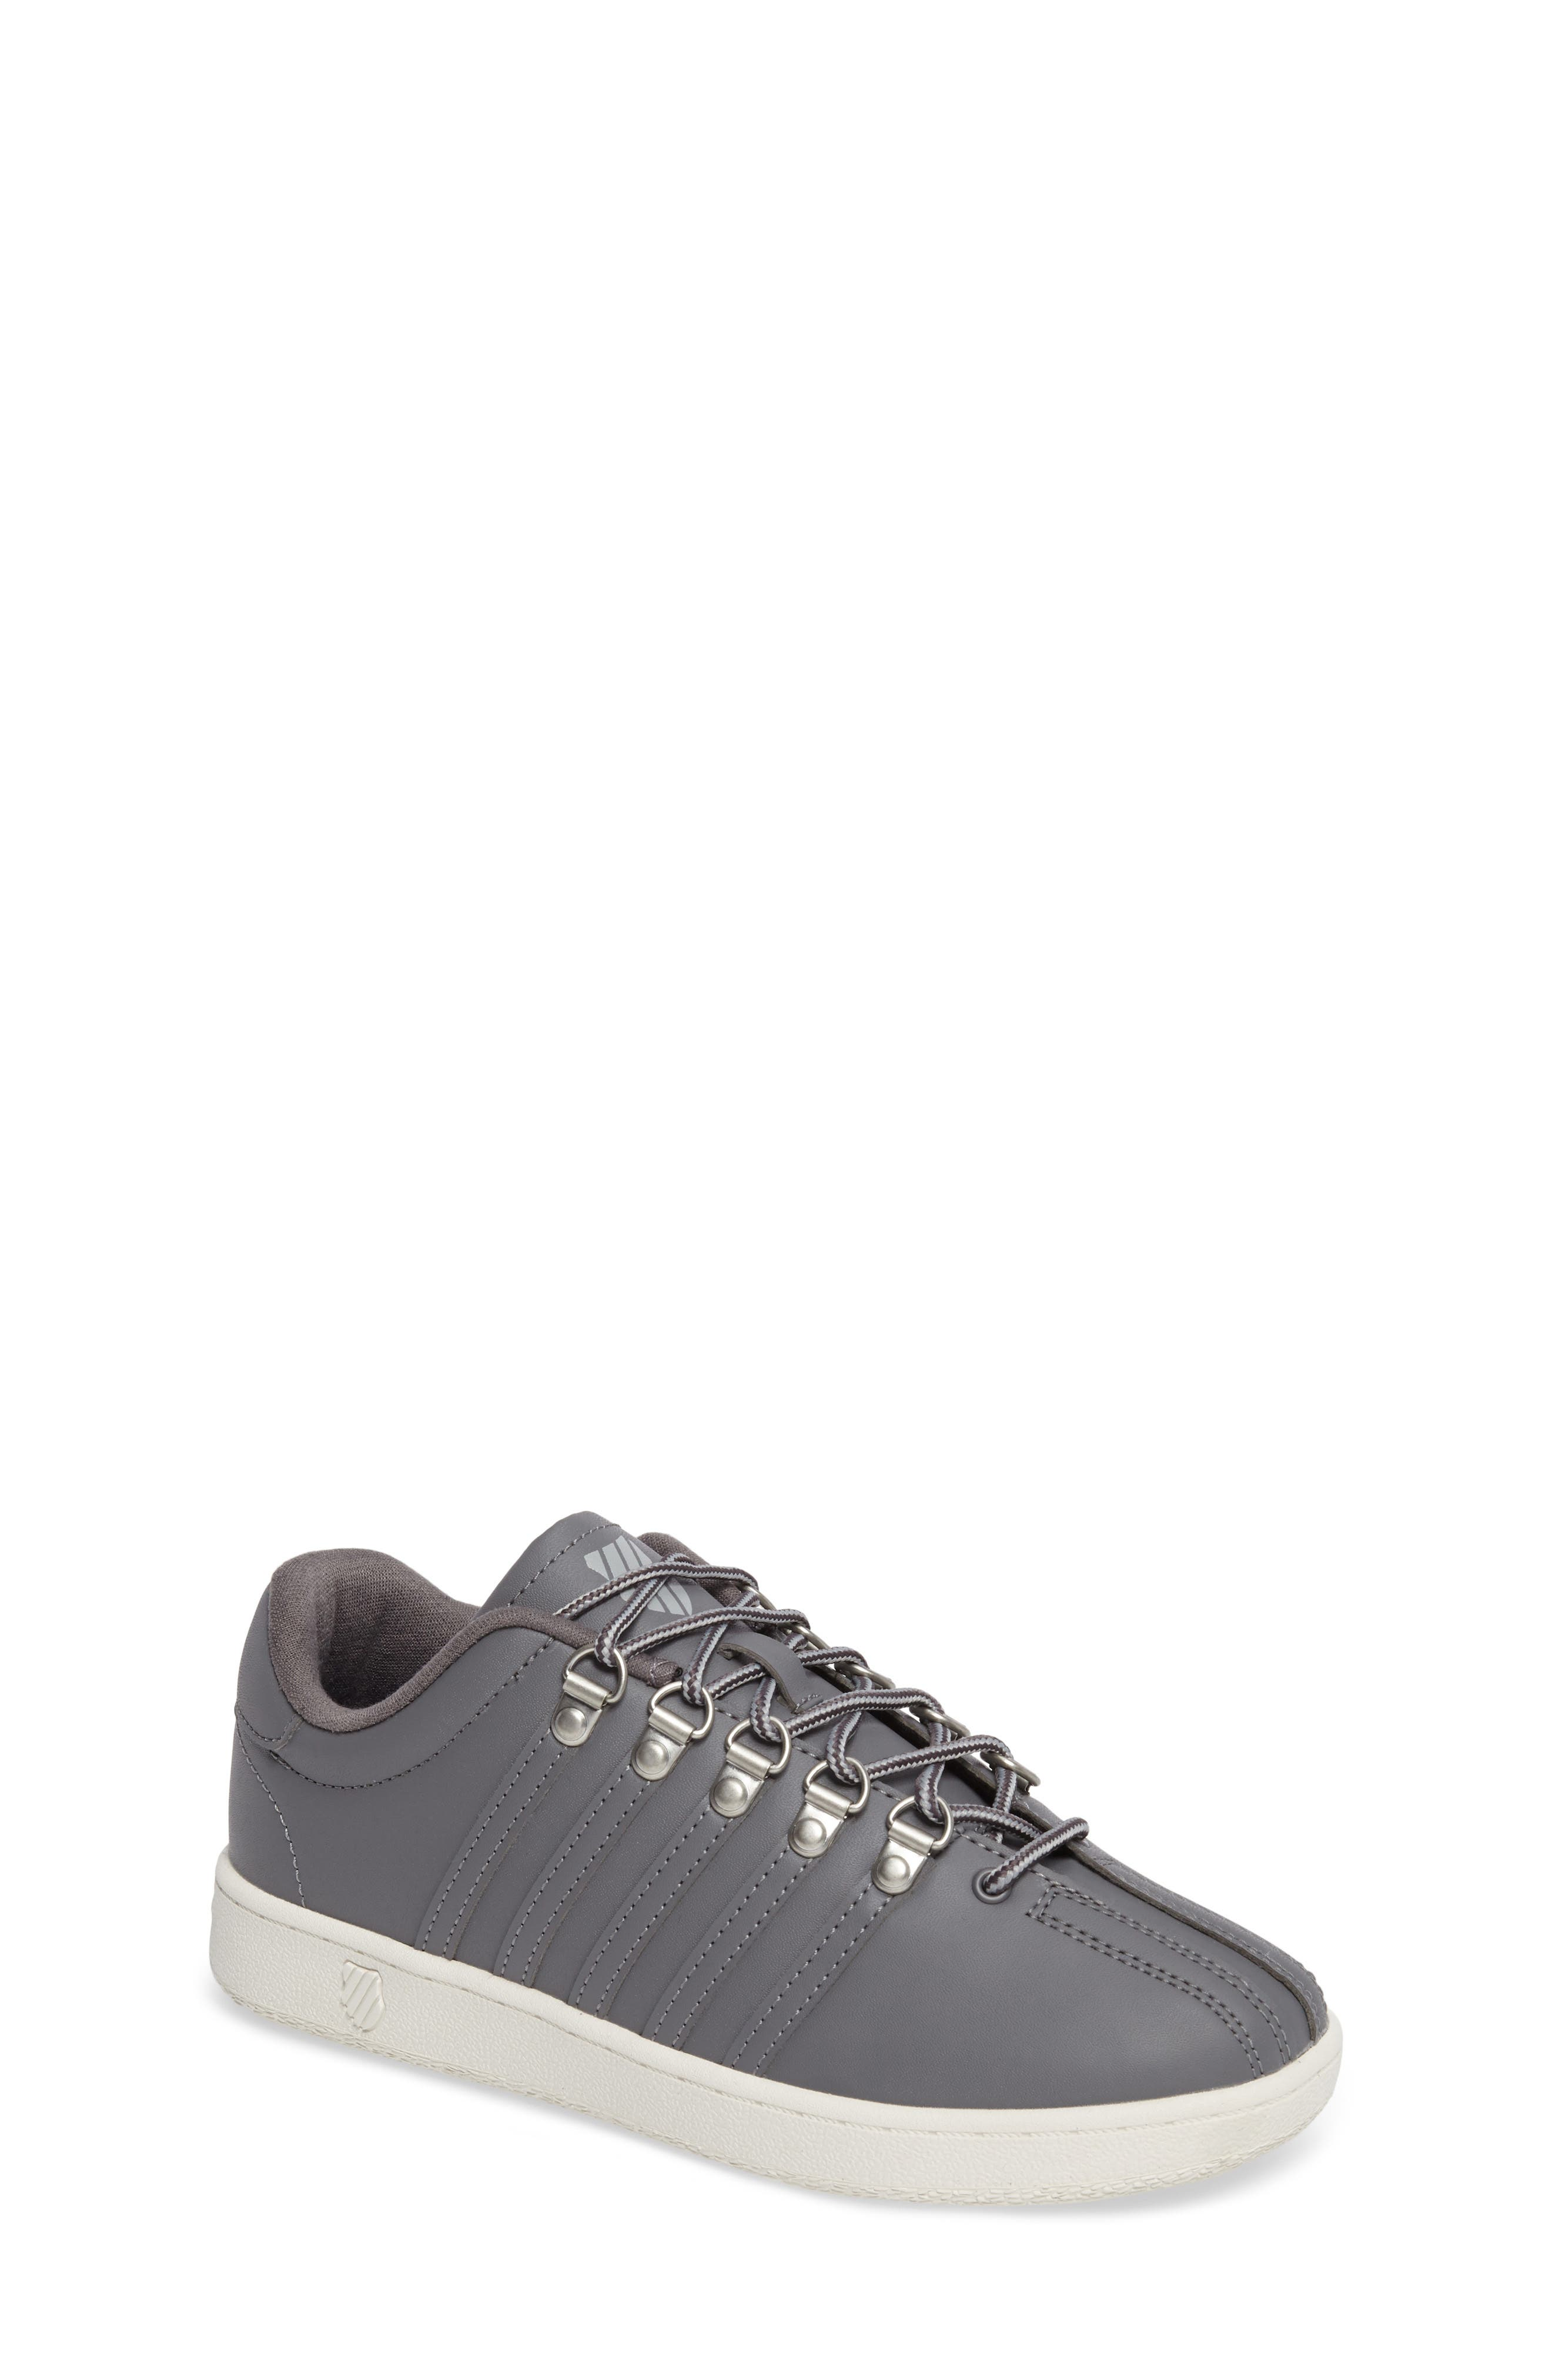 Classic VN Sneaker,                         Main,                         color,